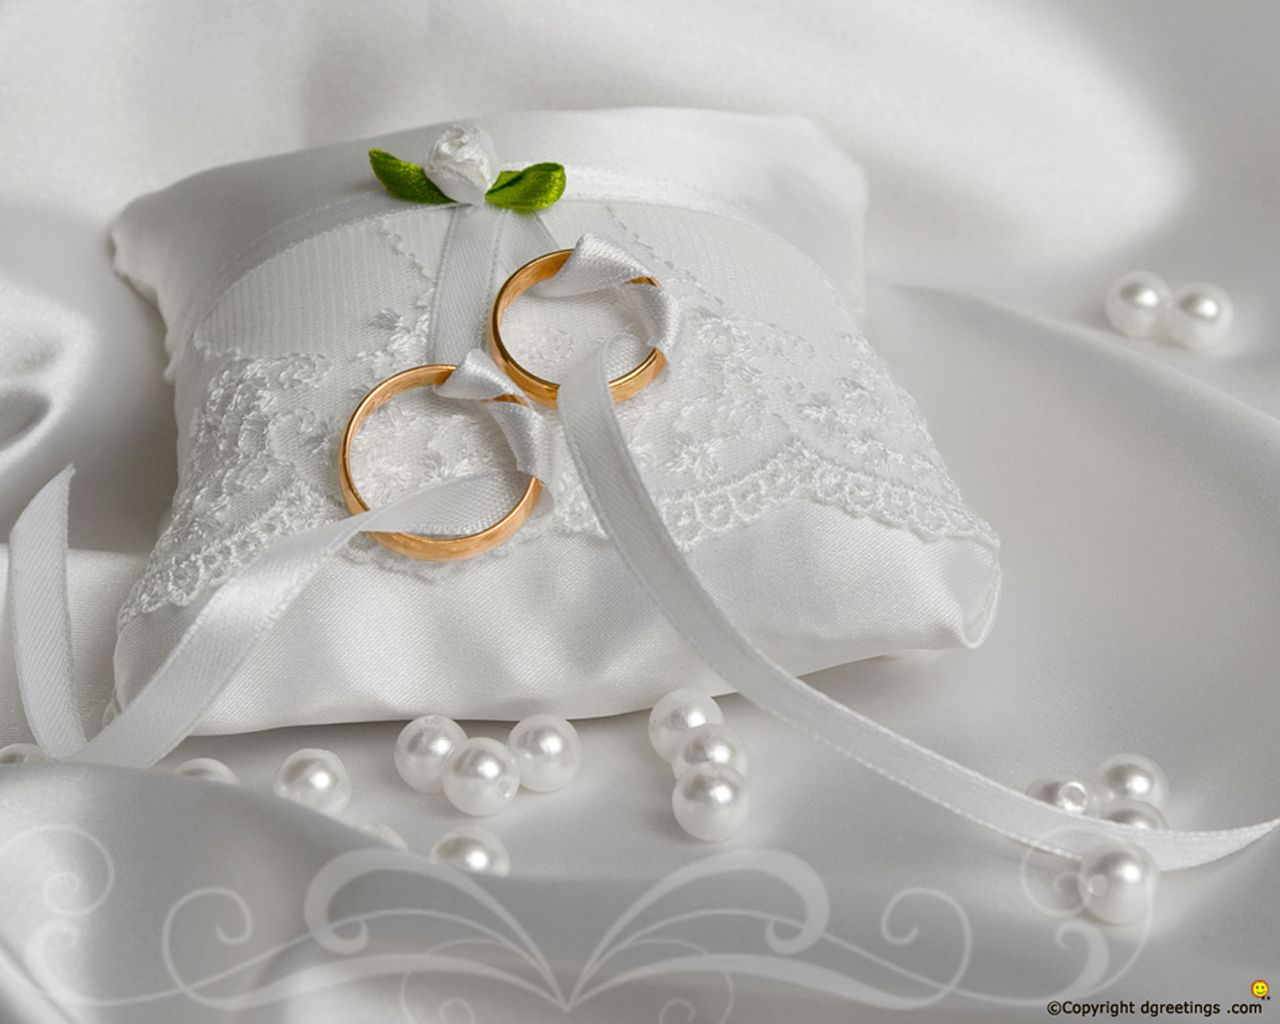 1280x1024 46+] Marriage Wallpapers Images on WallpaperSafari